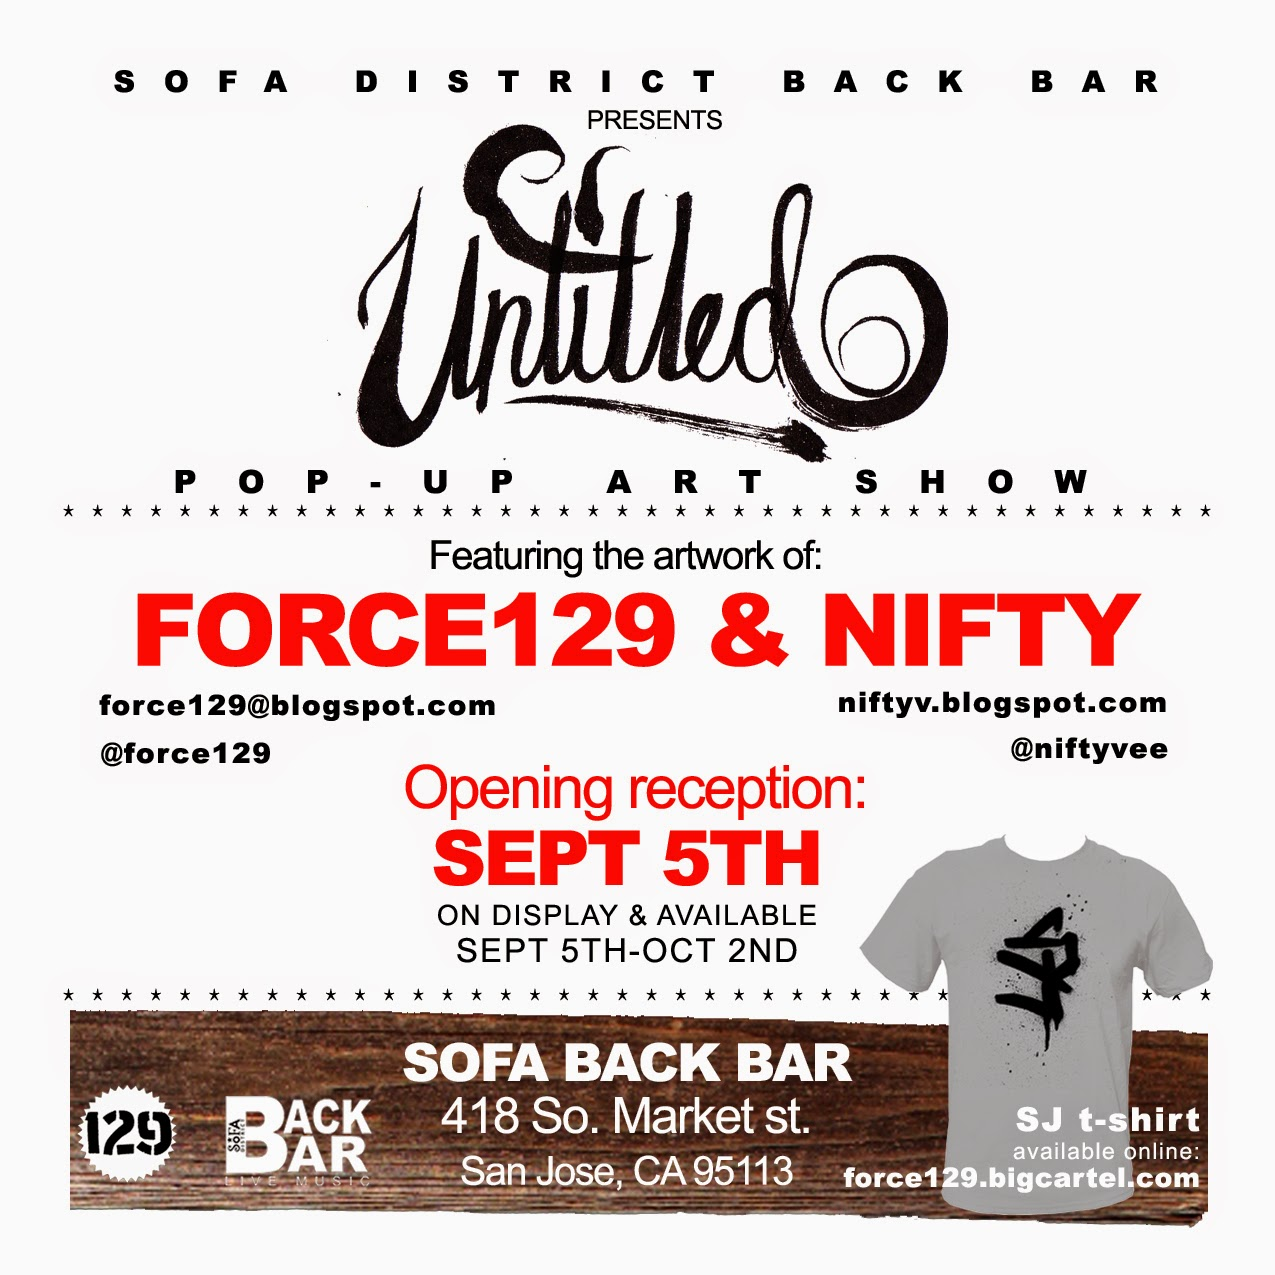 Force 129 art design studio untitled pop up art show for Back bar sofa san jose